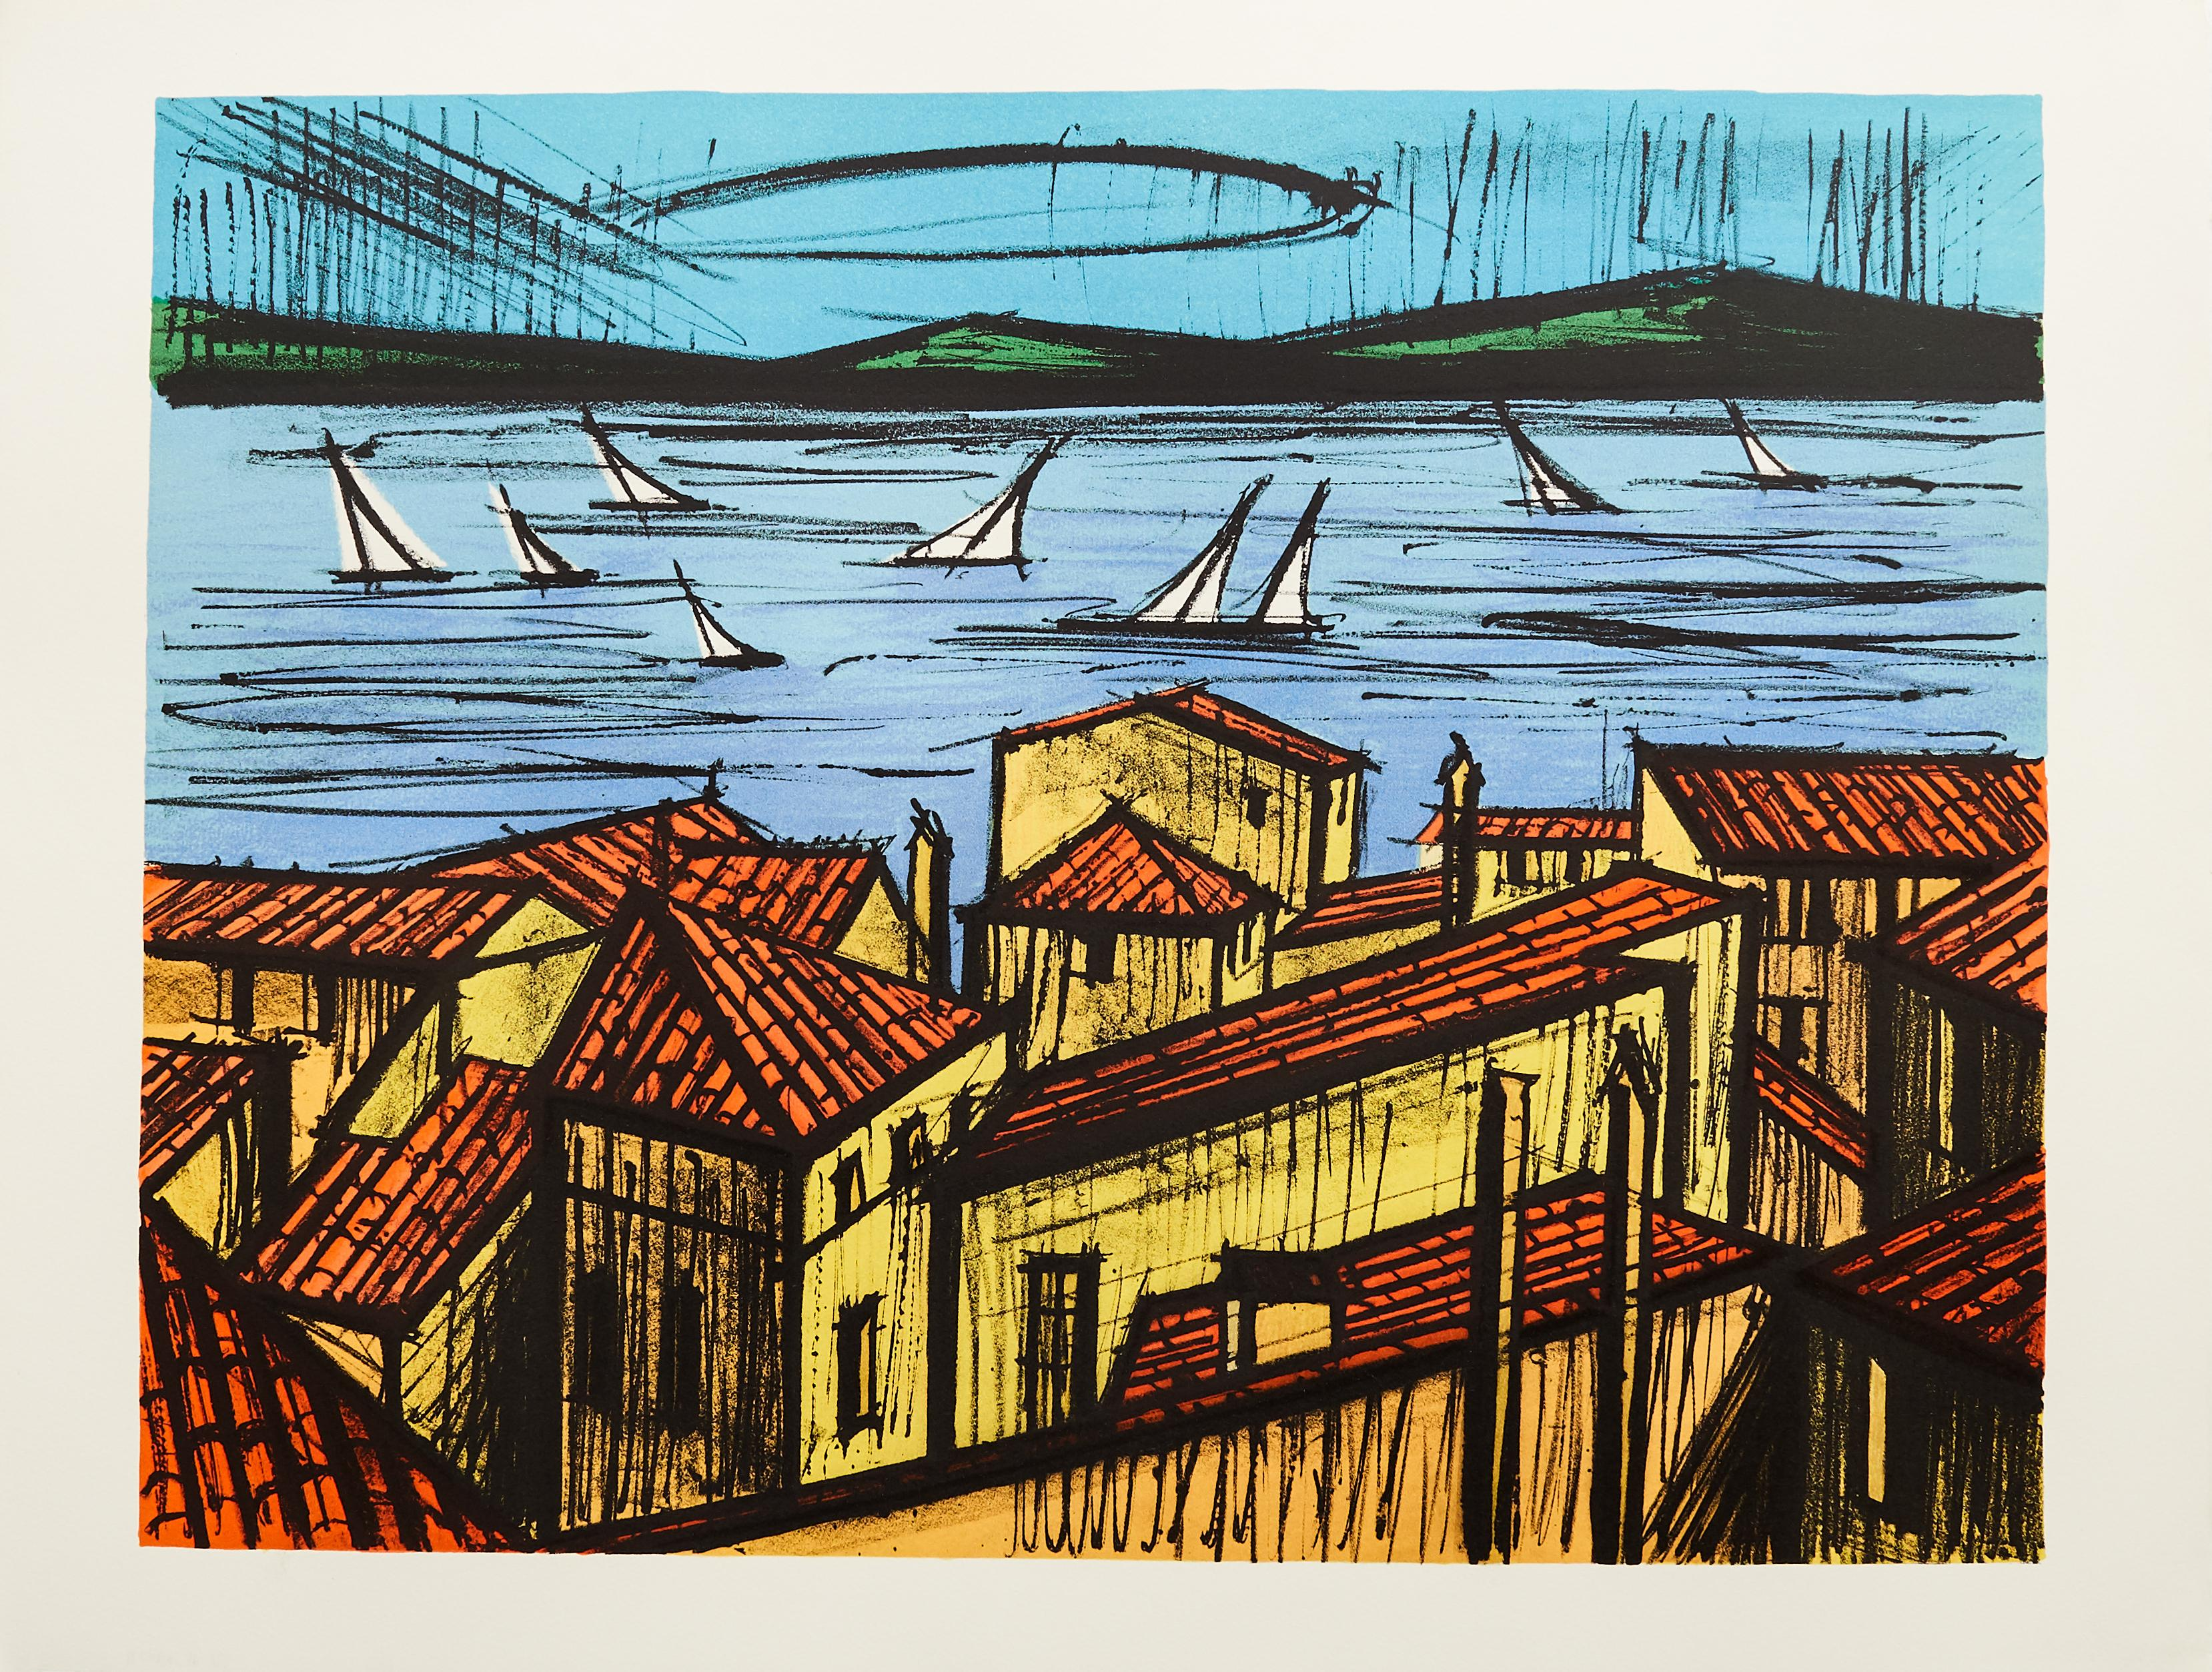 Roofs of St. Tropez by Bernard Buffet - color lithograph